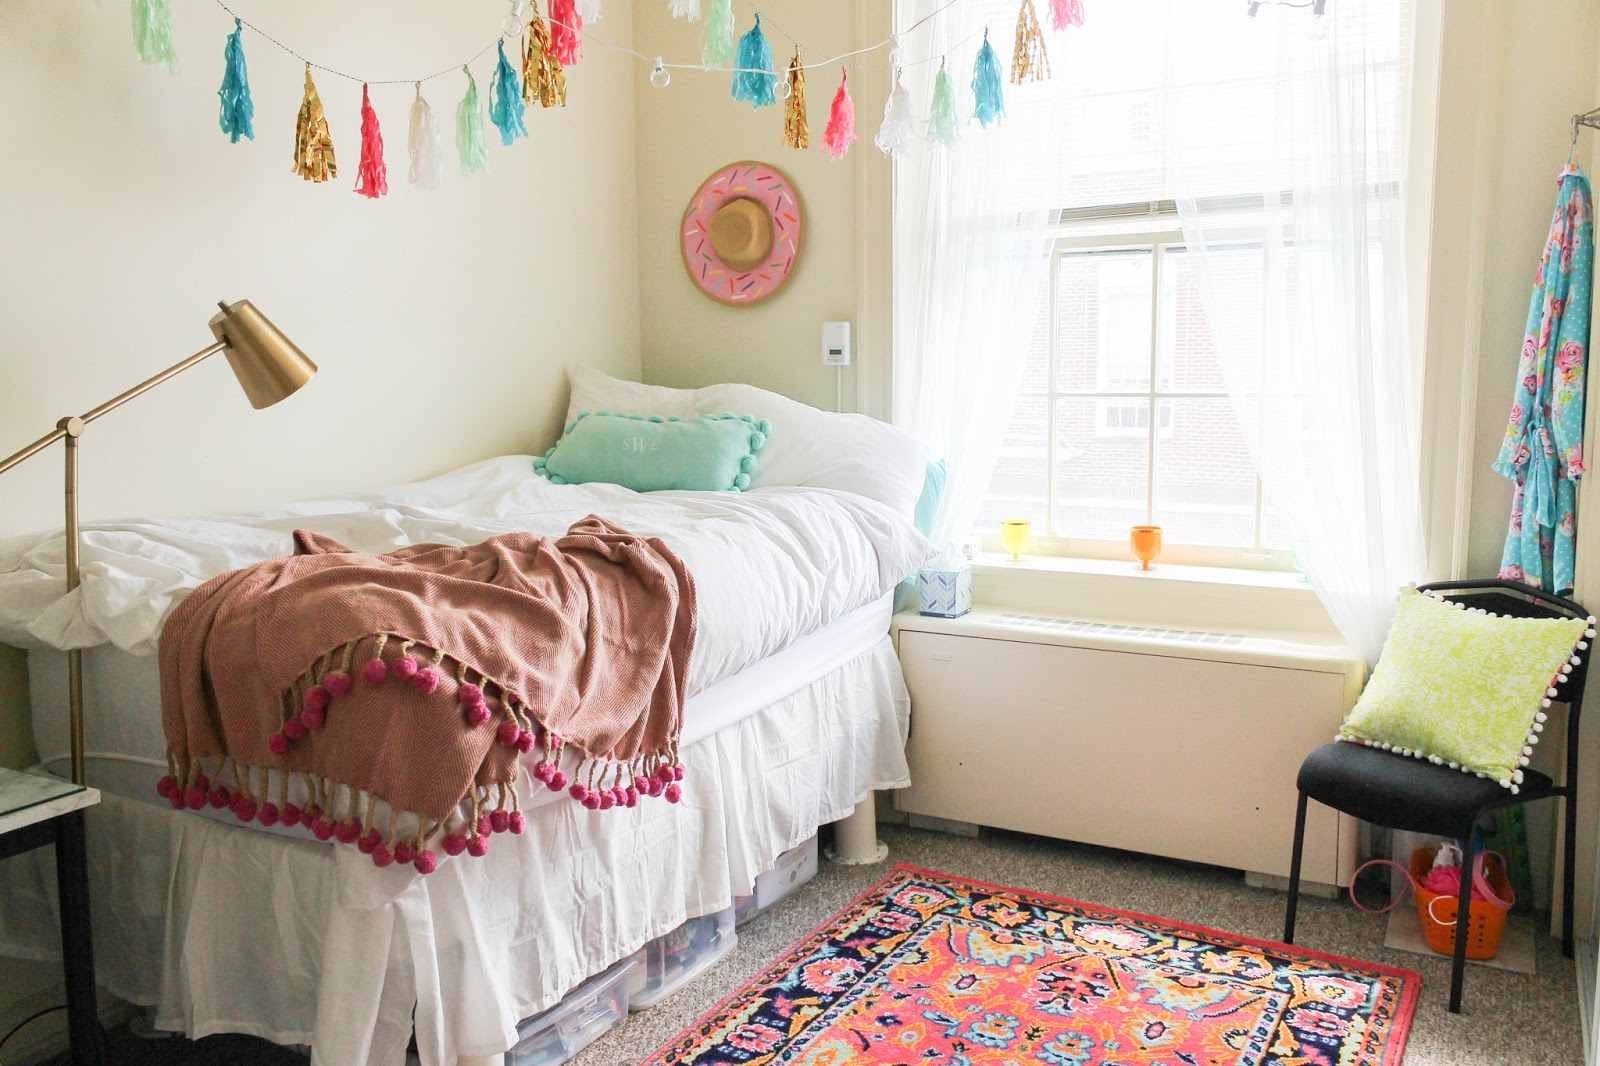 Dorm Room Reveal | The Bella Insider